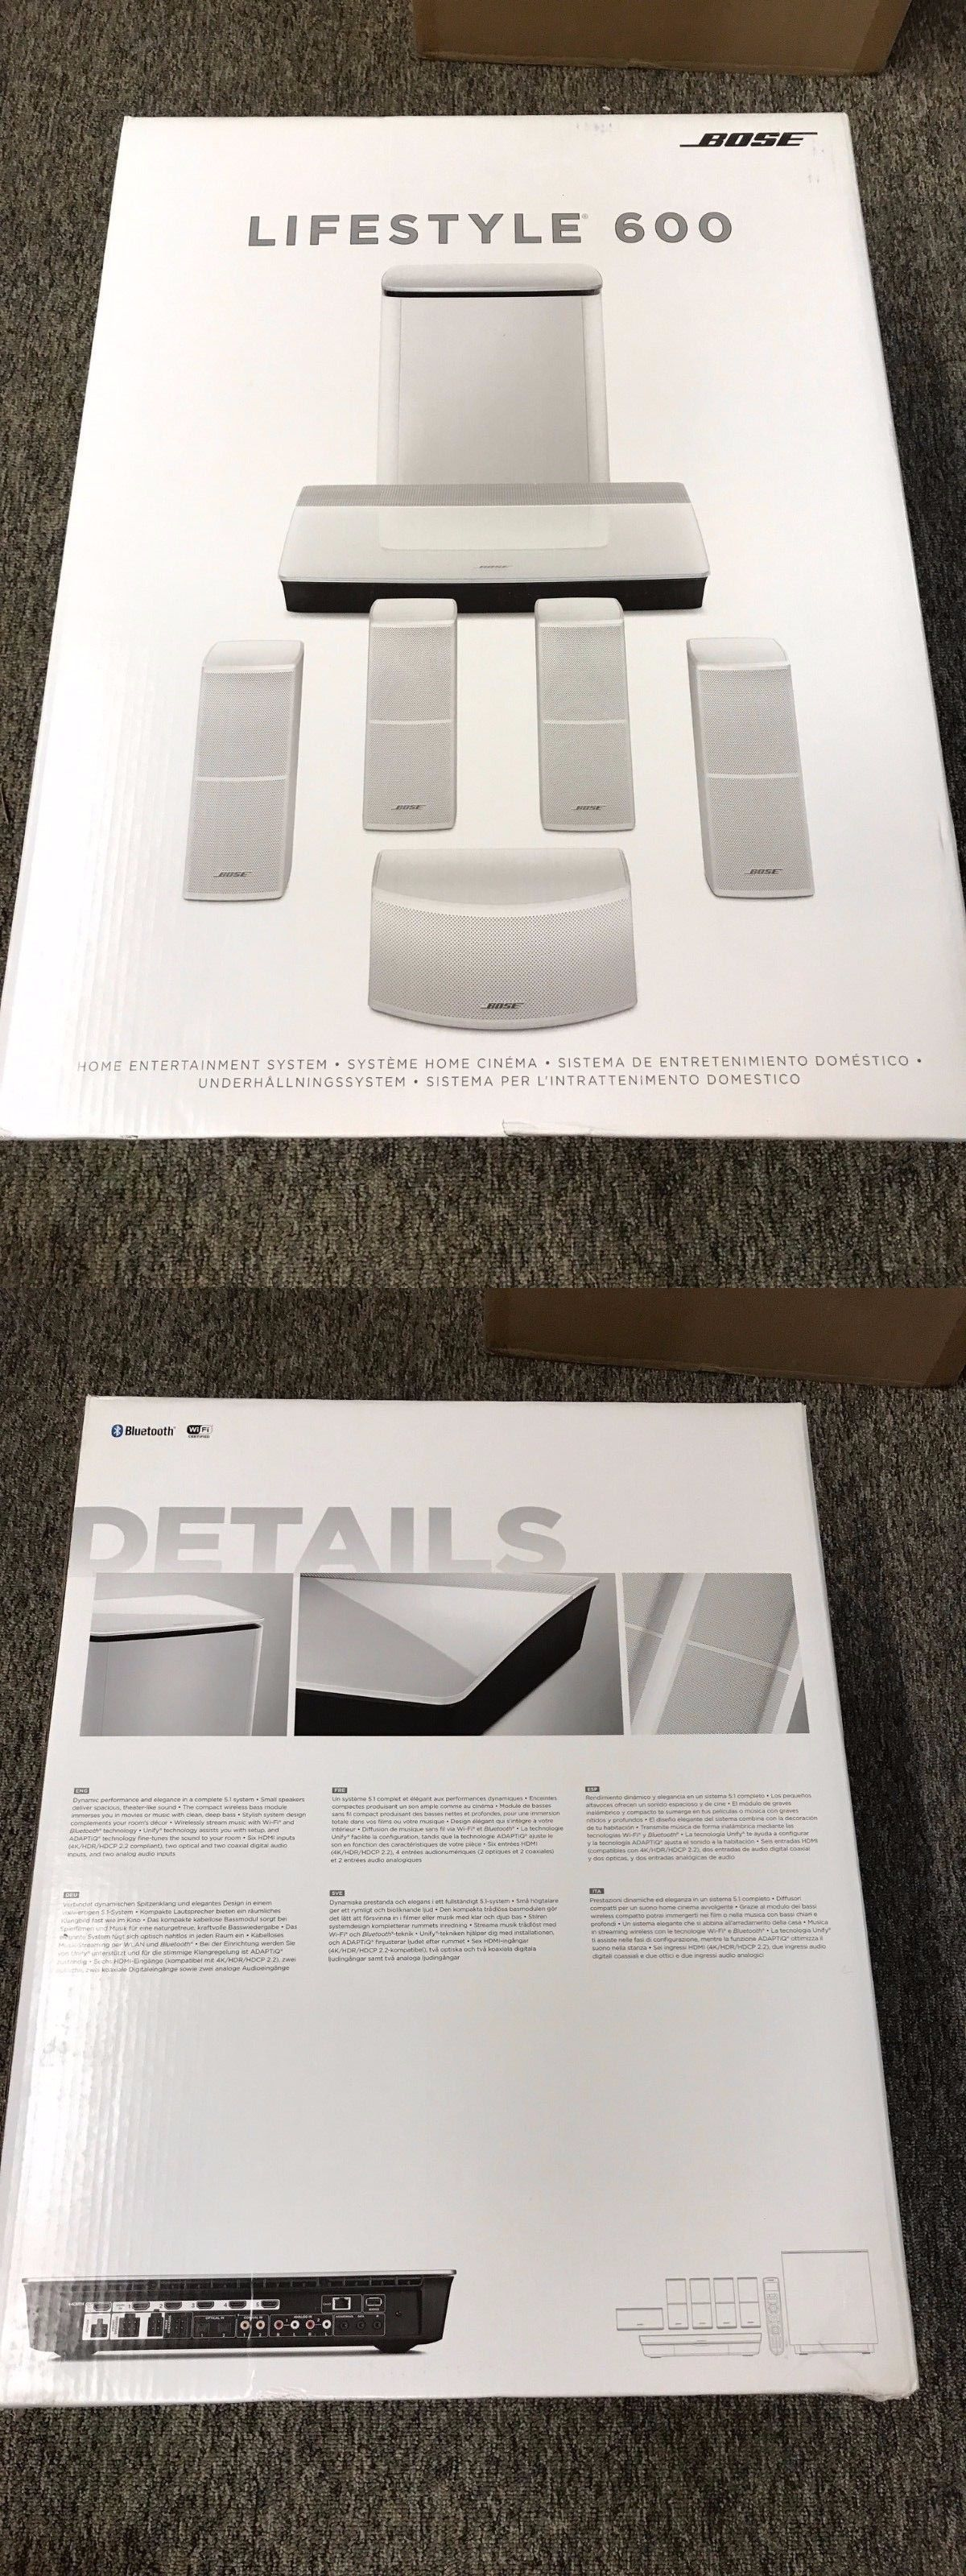 Home theater systems bose white lifestyle entertainment system   buy it also rh pinterest